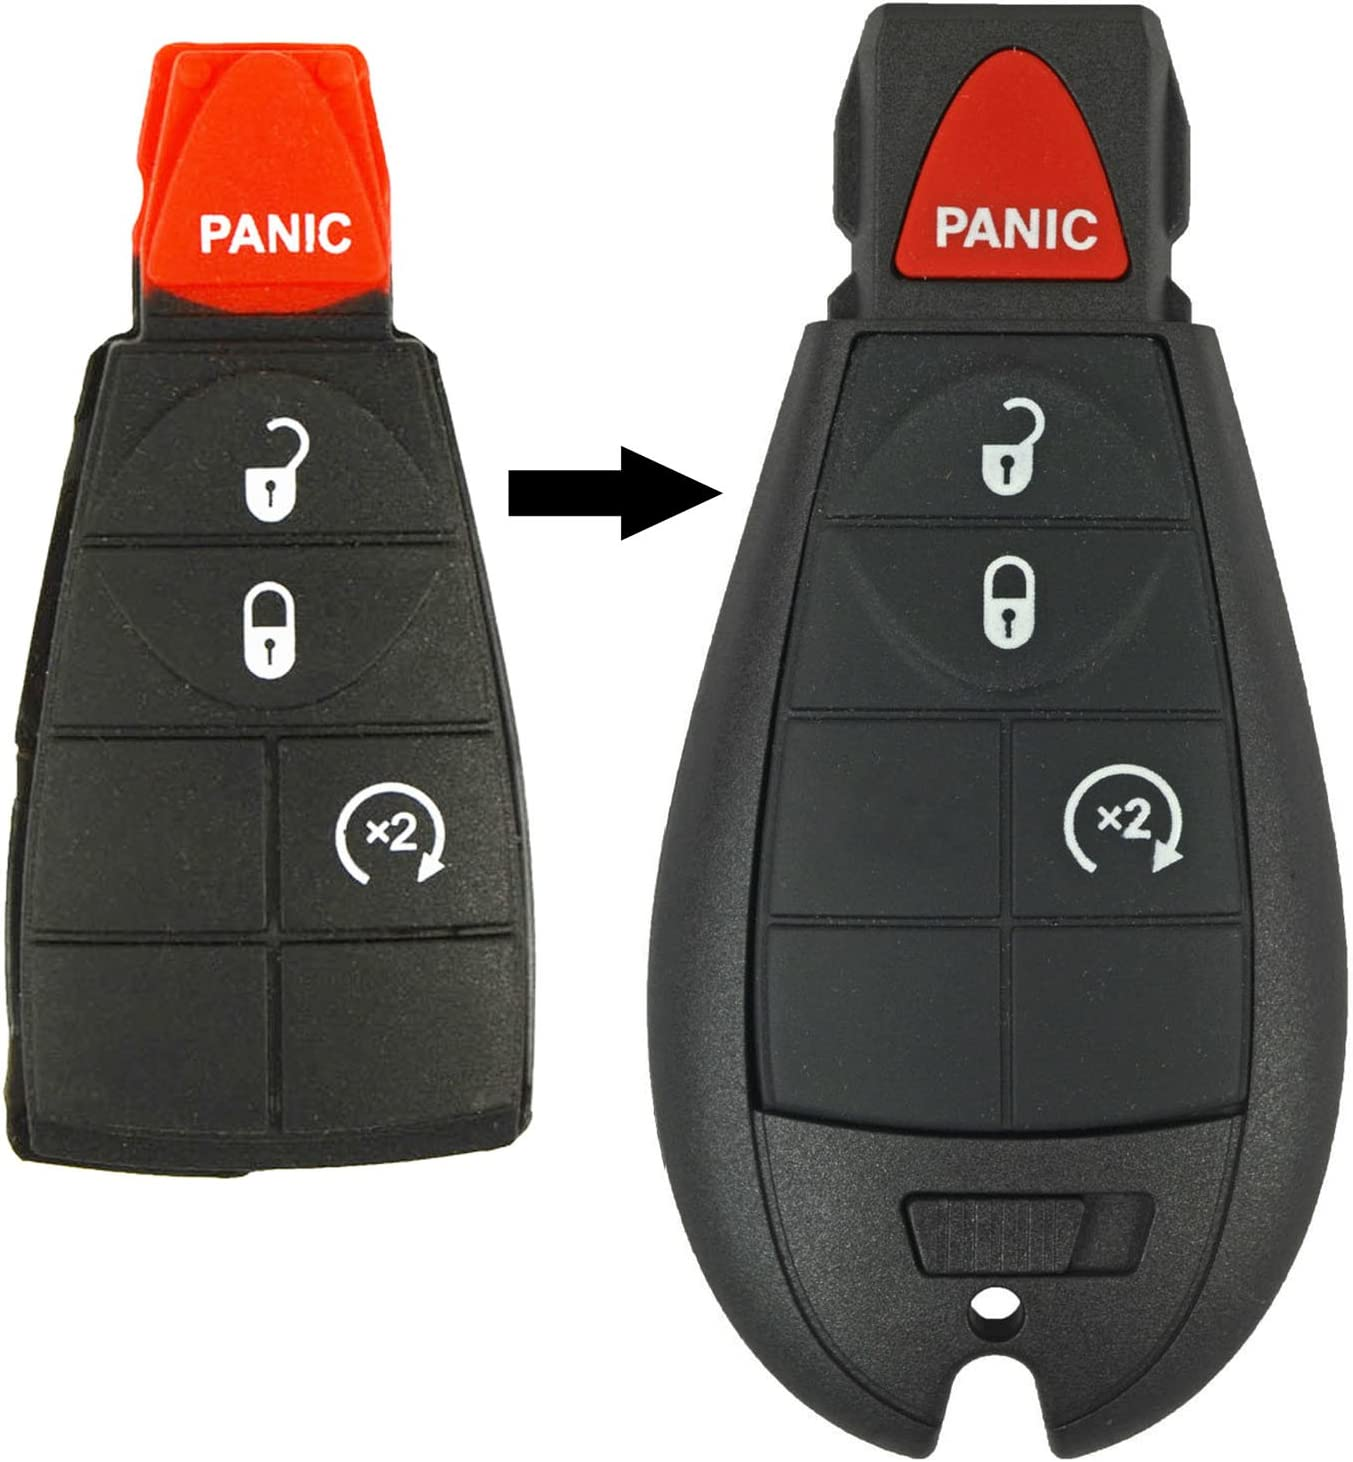 qualitykeylessplus Two Replacement 4 Button Remote Rubber Pads for Chrysler Dodge Jeep Fobik Remotes with Free KEYTAG